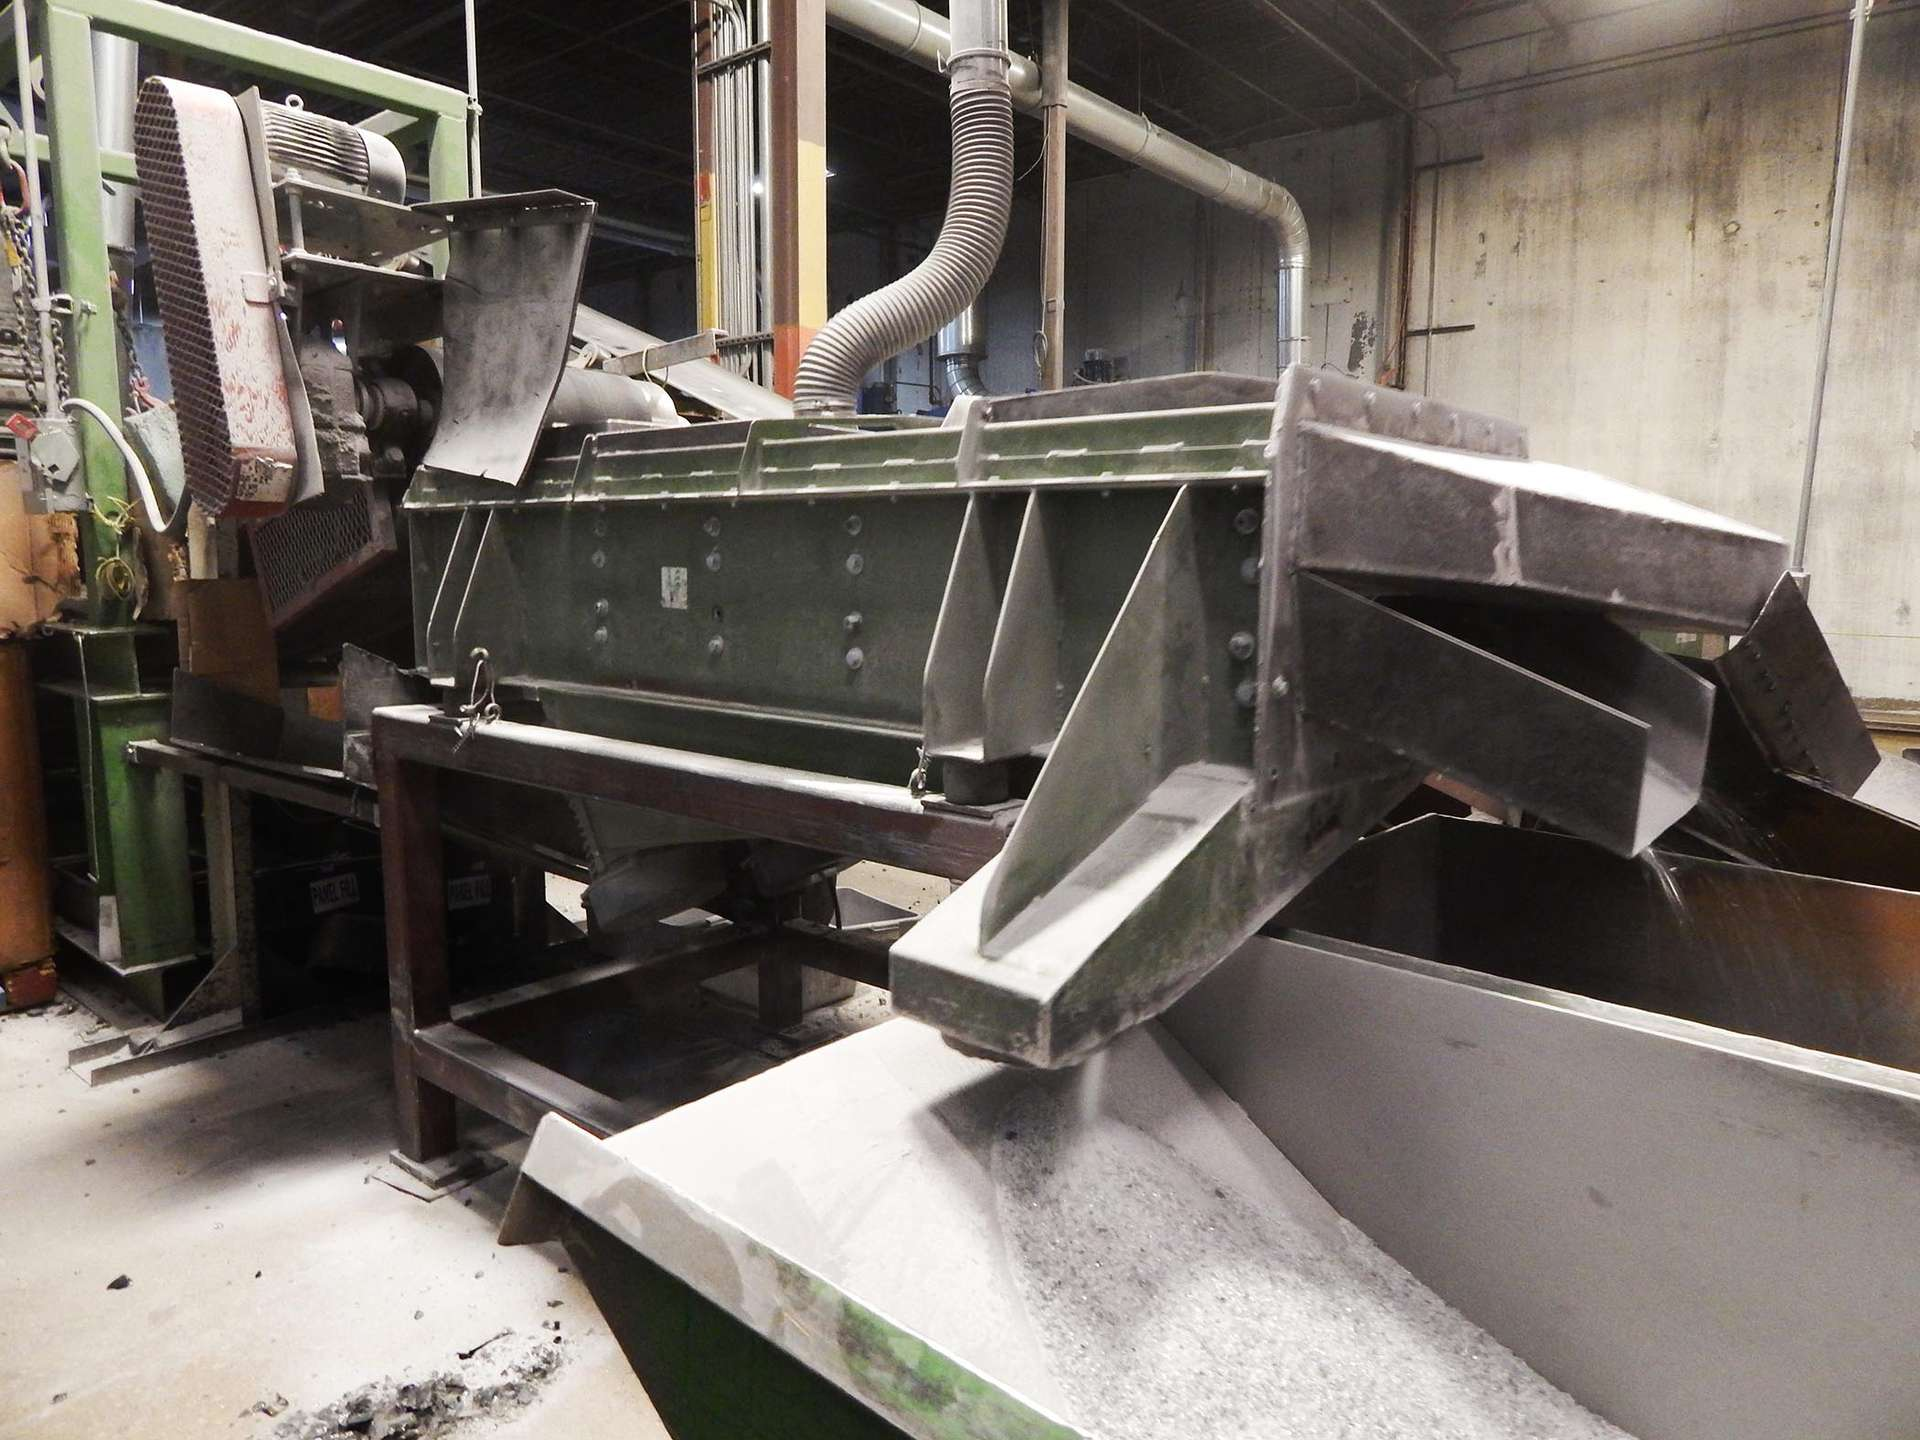 vibratory screener removing fines from materials